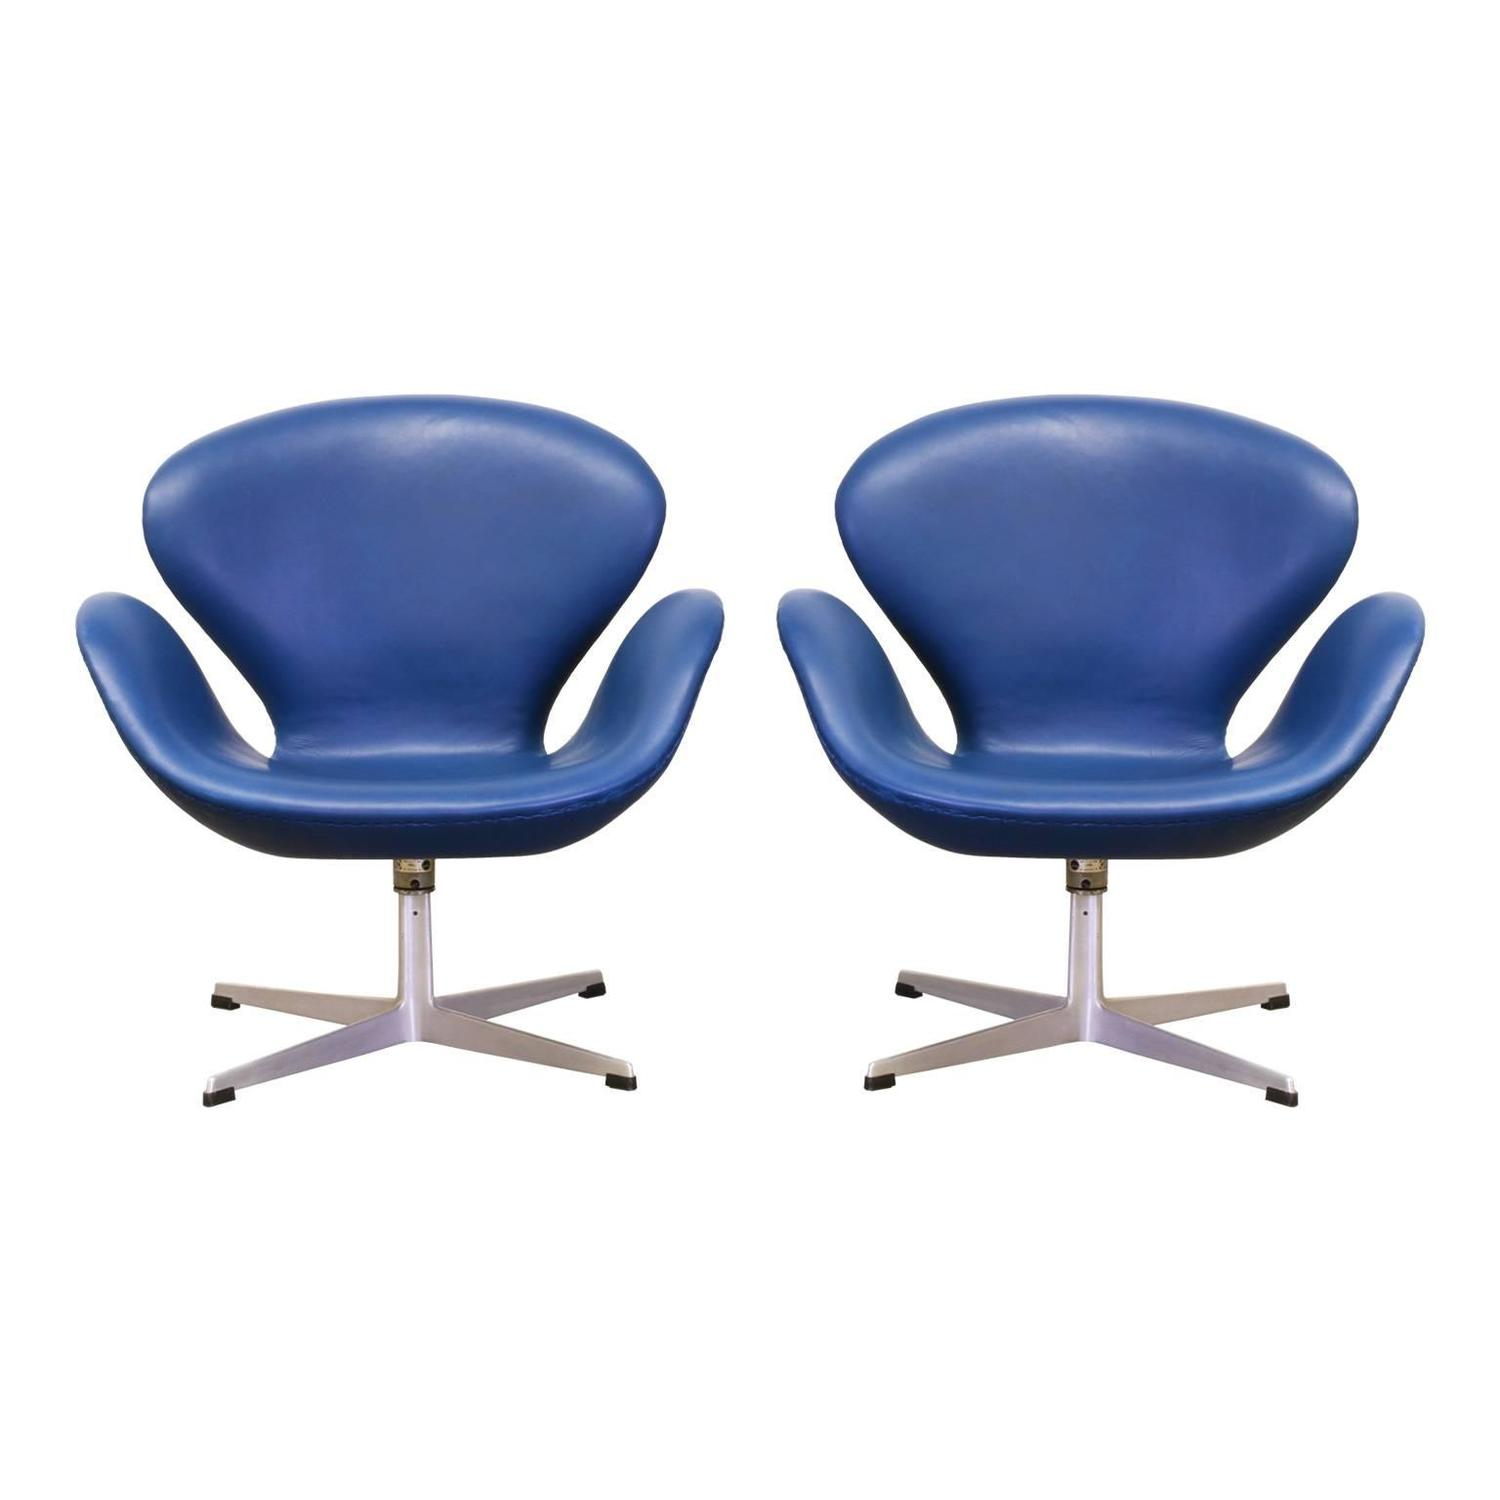 Arne jacobsen leather swan chairs for fritz hansen for for Swan chairs for sale